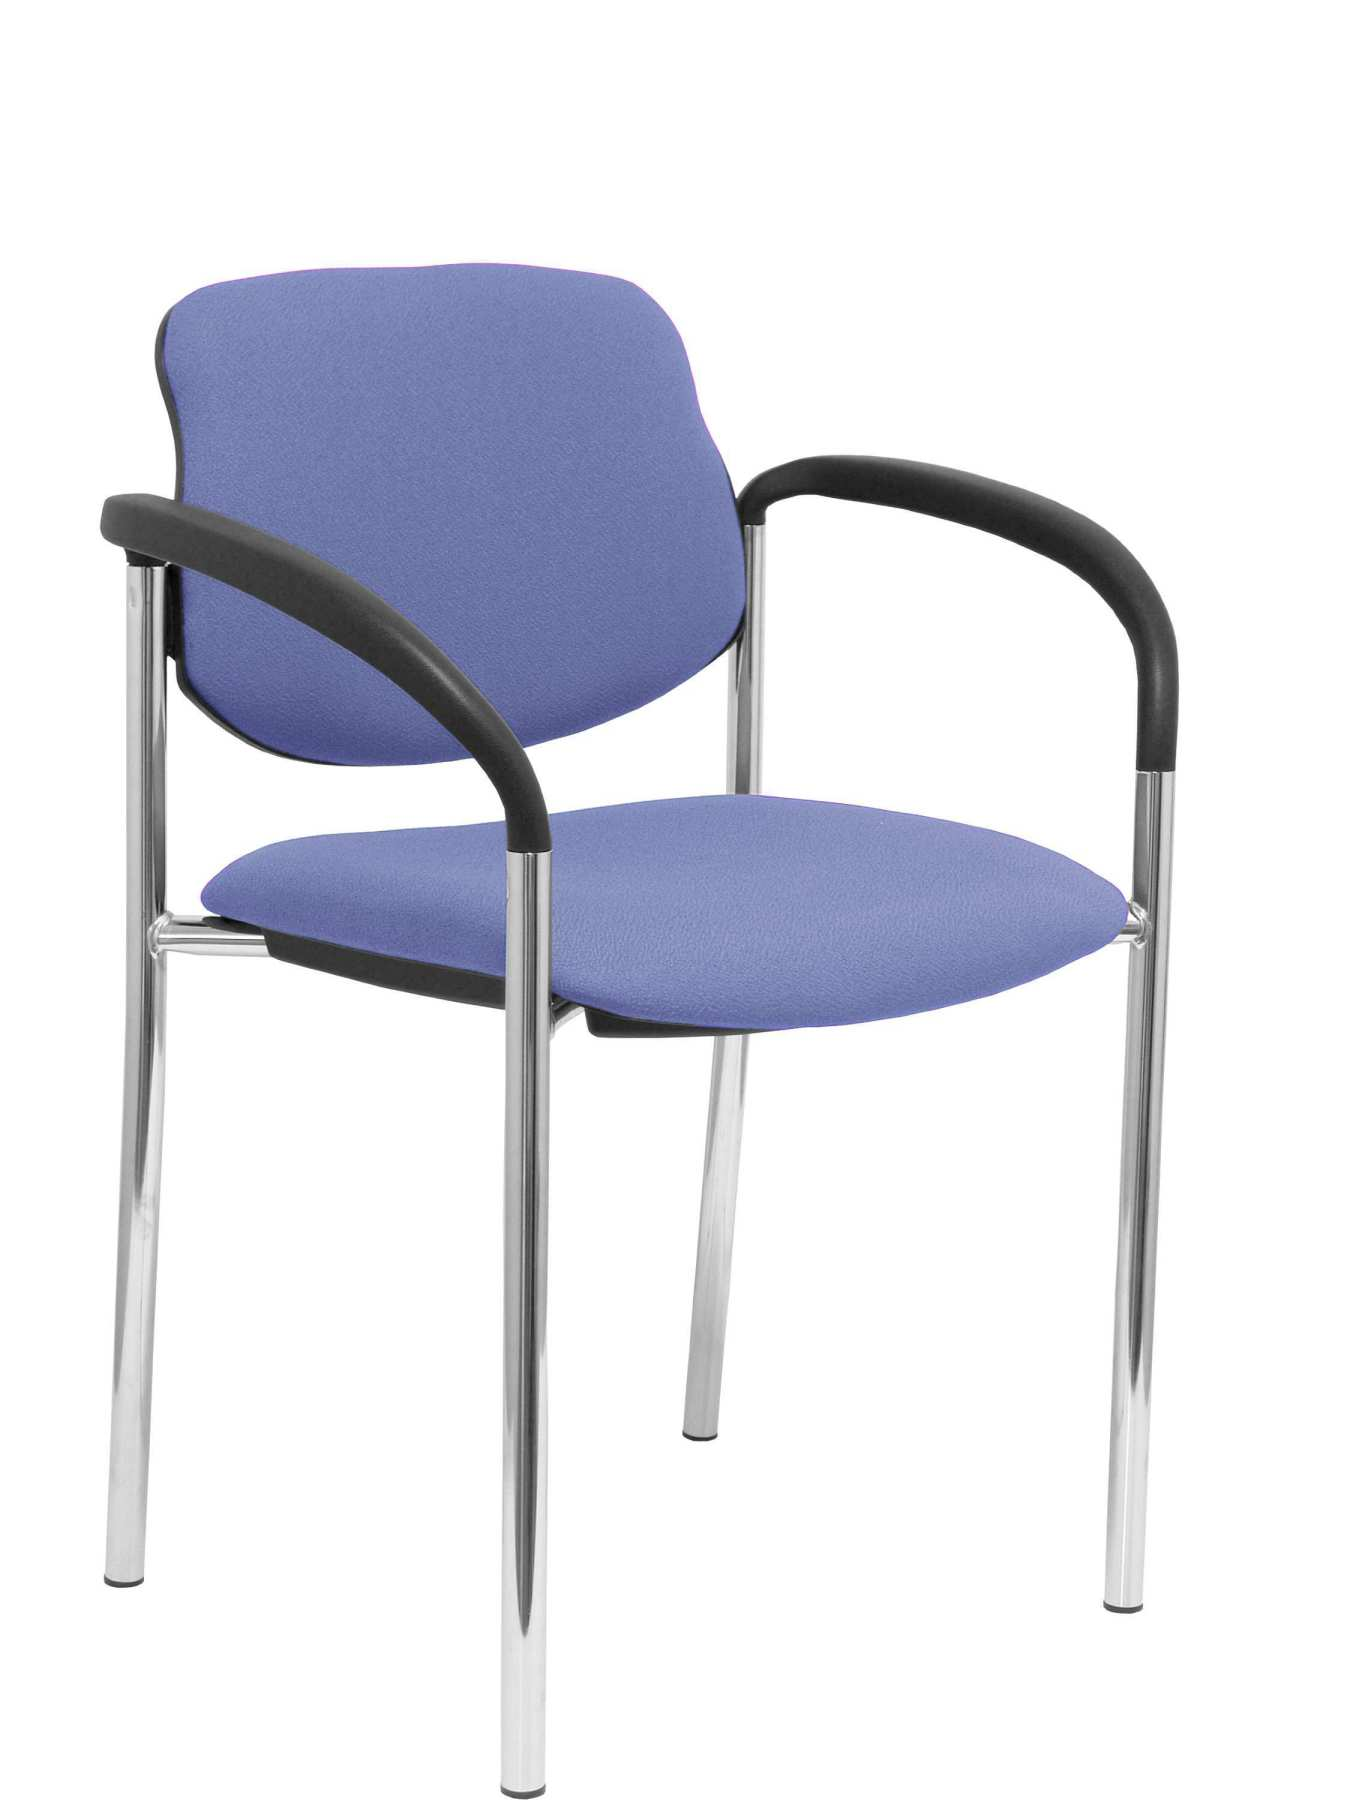 Confident Chair 4-leg And Estructrua Chrome Arms-Seat And Back Upholstered In Fabric BALI Blue Color Cla